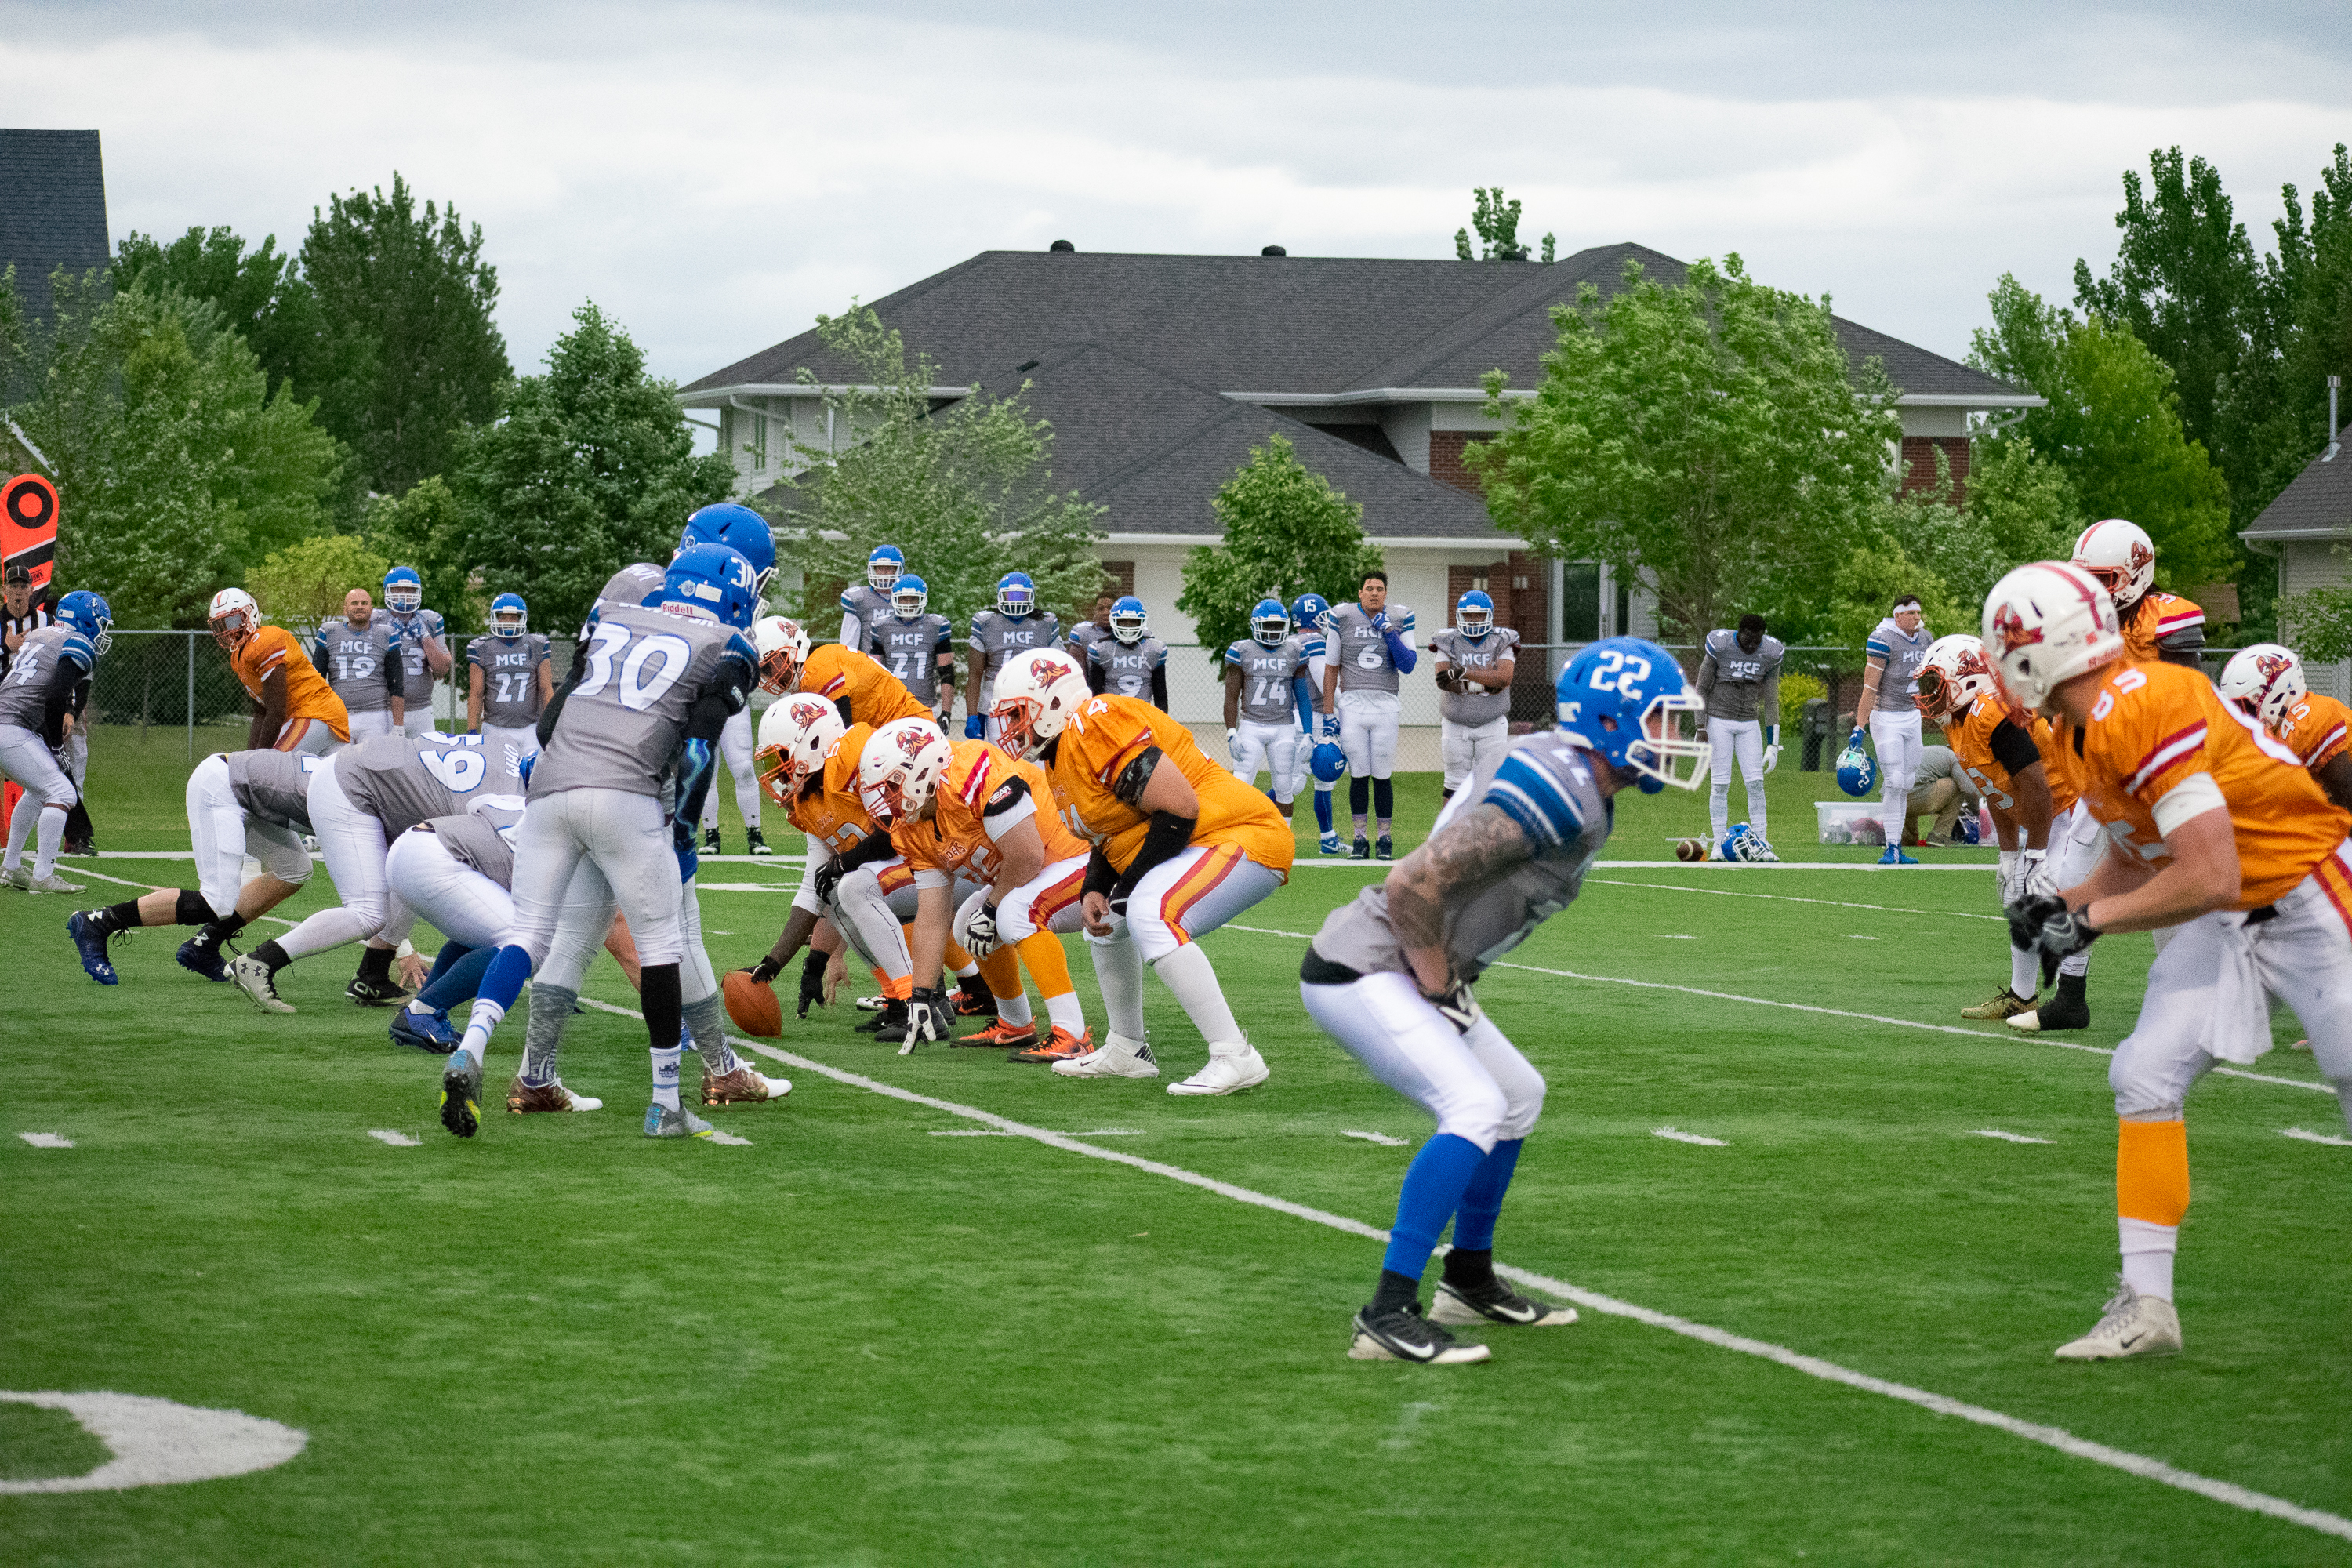 Invaders Shut Out Med City Freeze, Move To 3-1